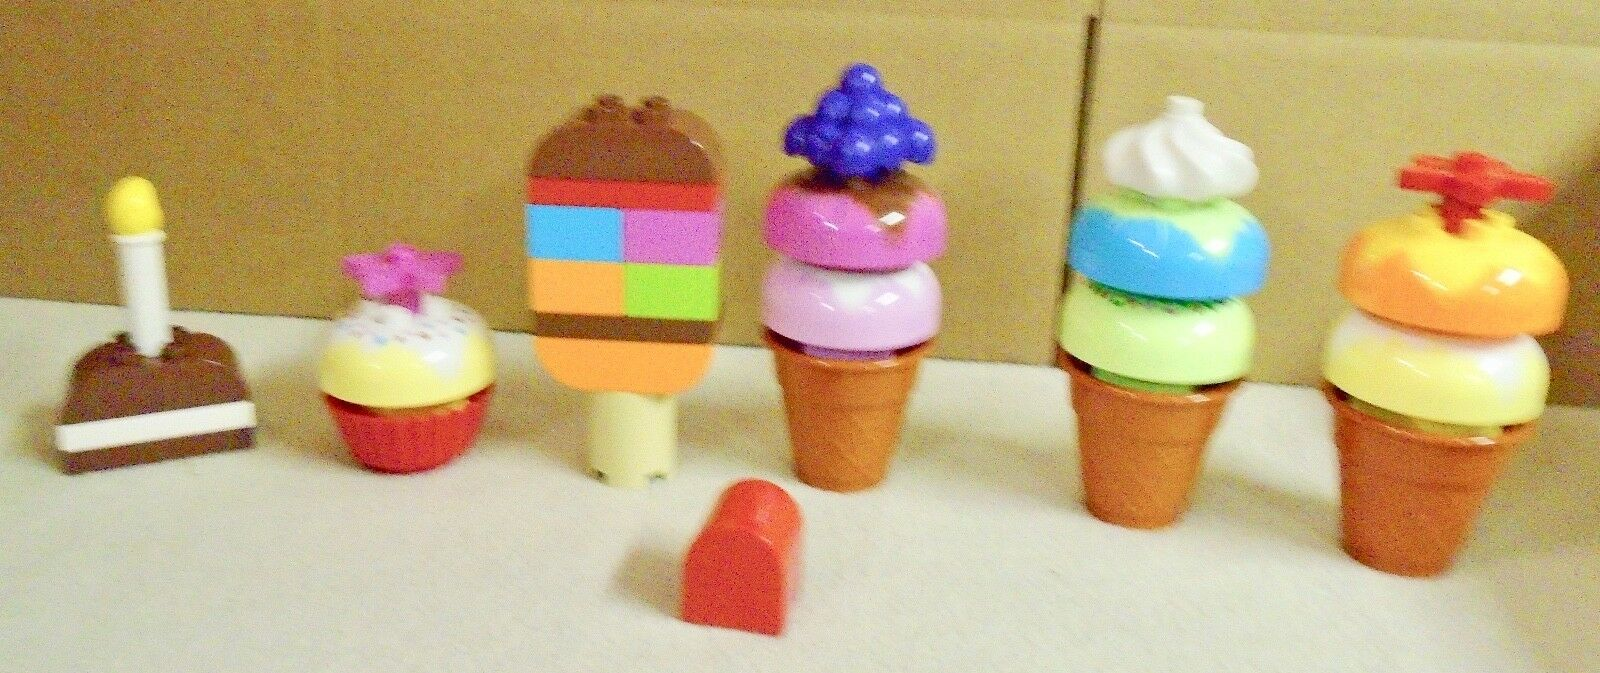 LEGO  DUPLO  CREATIVE CREATIVE CREATIVE  ICE  CREAM  &   MY  FIRST  CAKES  COMPLETE  & cbde93